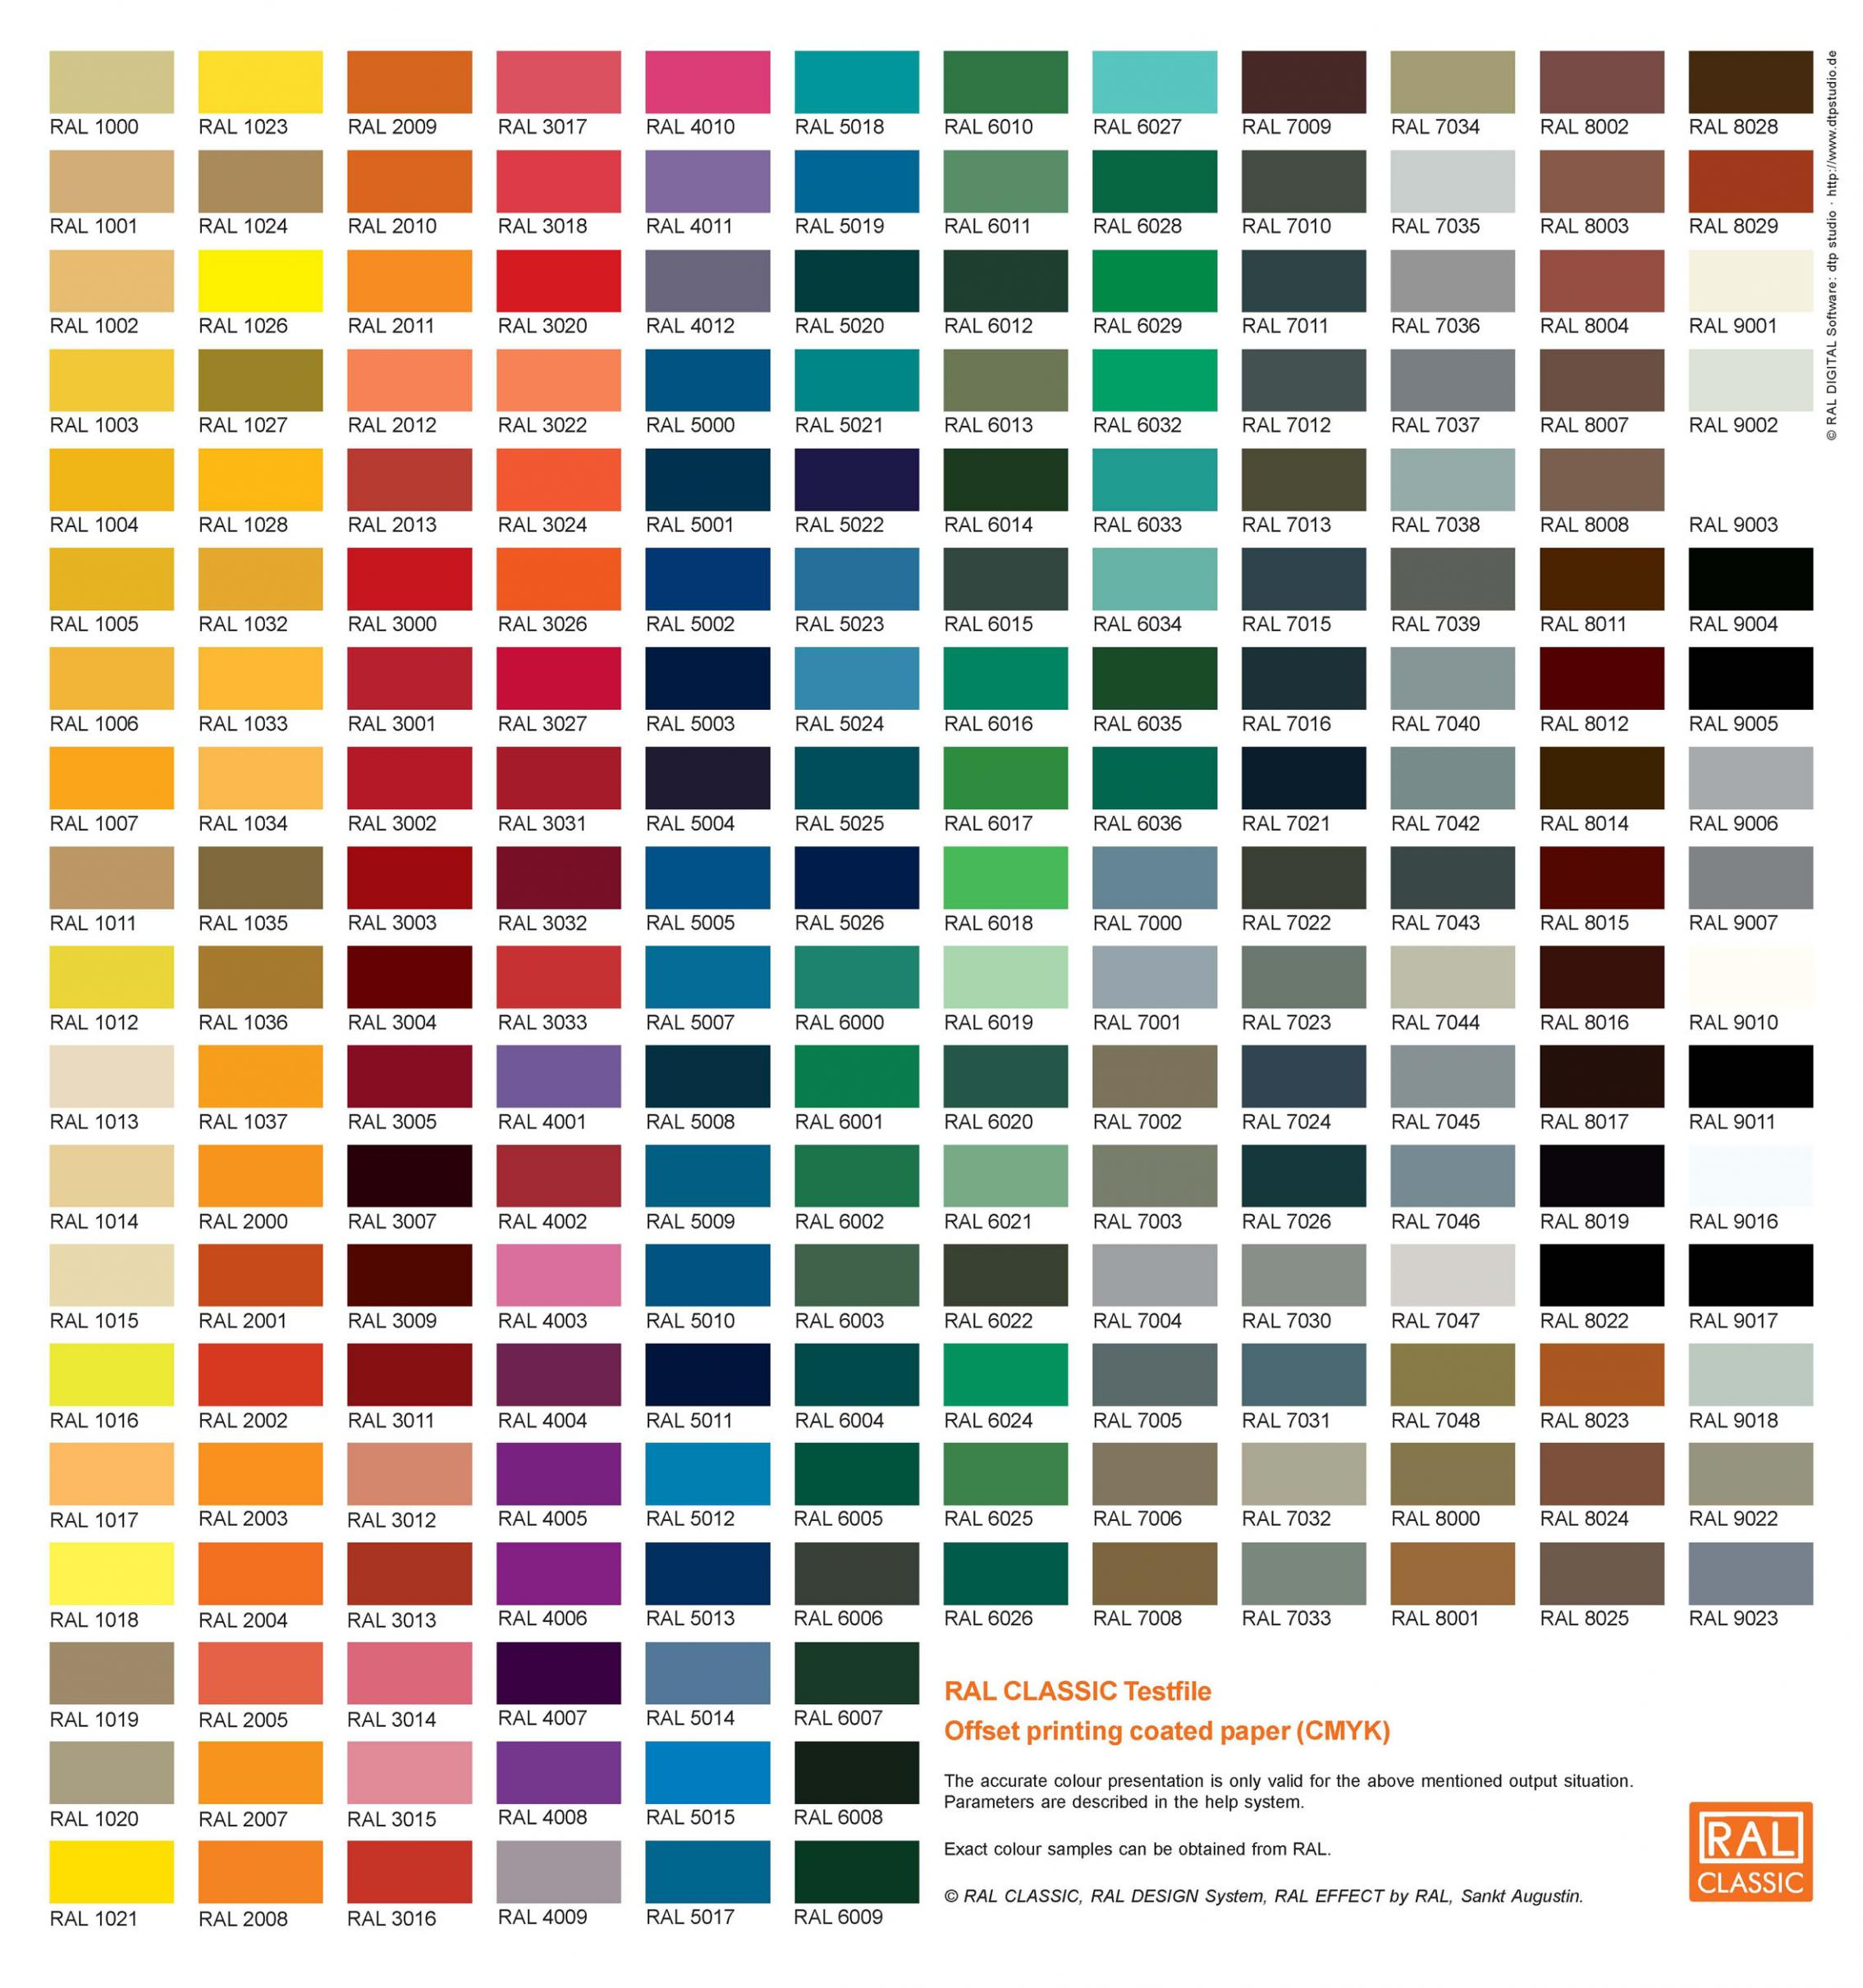 pantone ral color conversion chart pantone ral